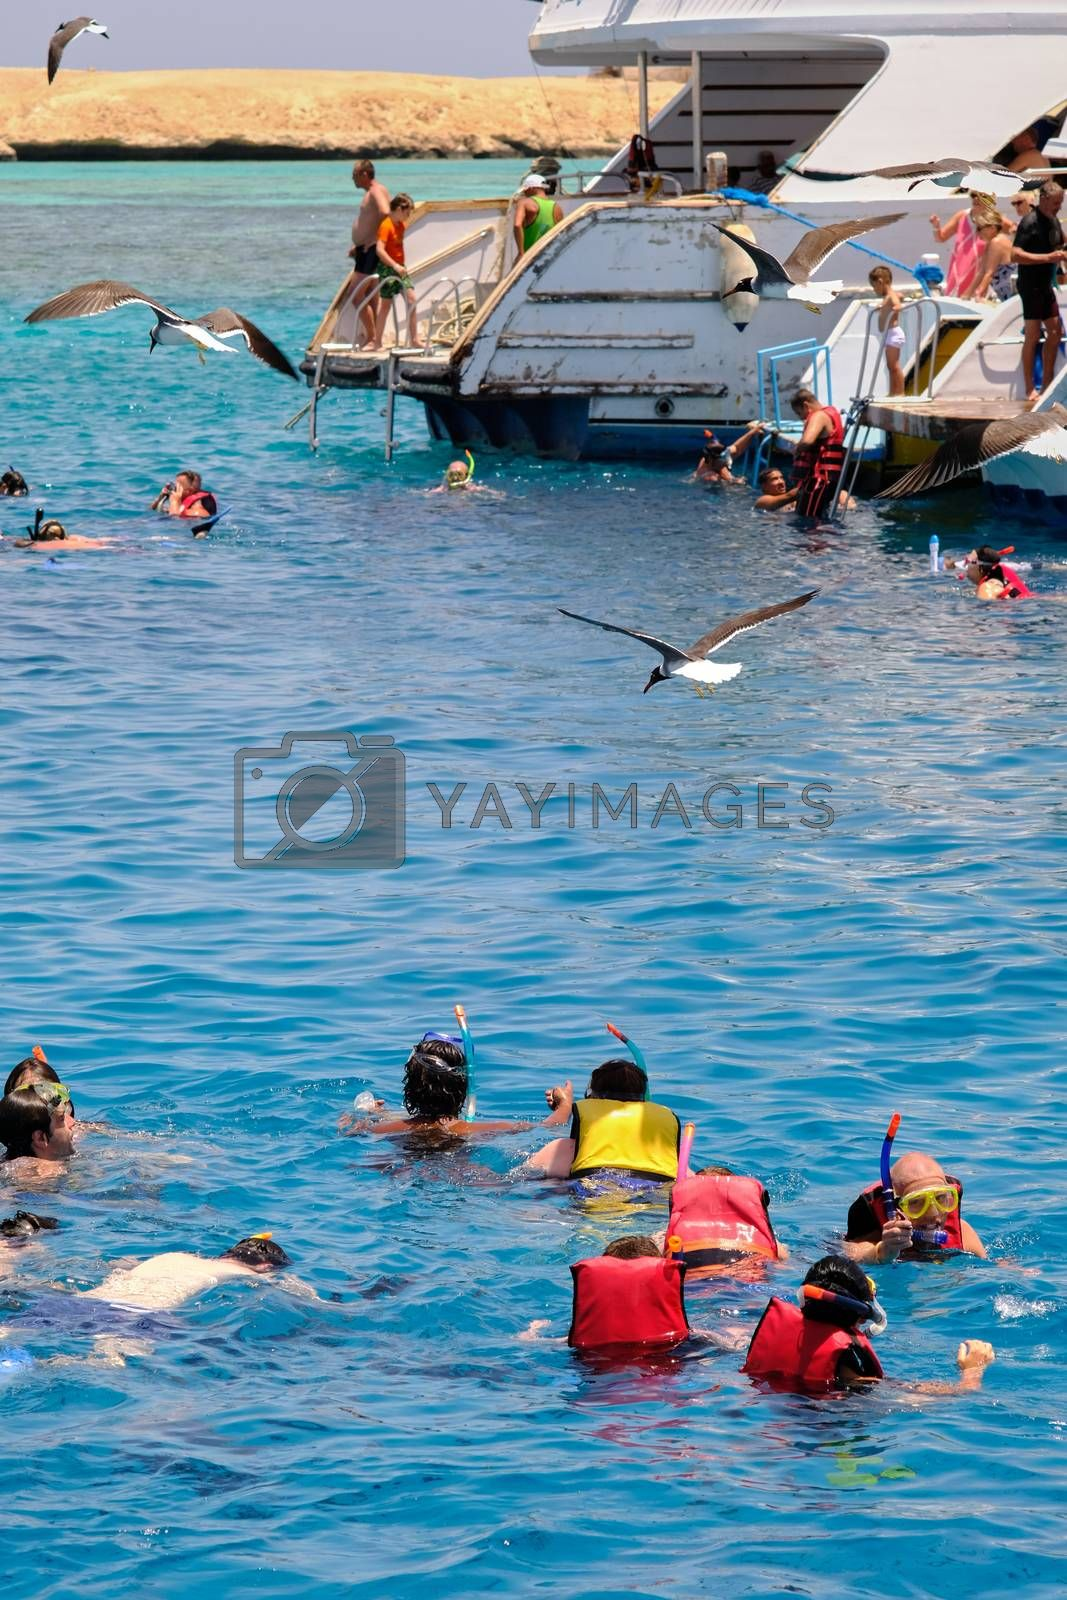 Hurghada / Egypt - May 21, 2019: Group of tourists snorkeling and scuba diving near Giftun island in Red Sea, Hurghada, Egypt